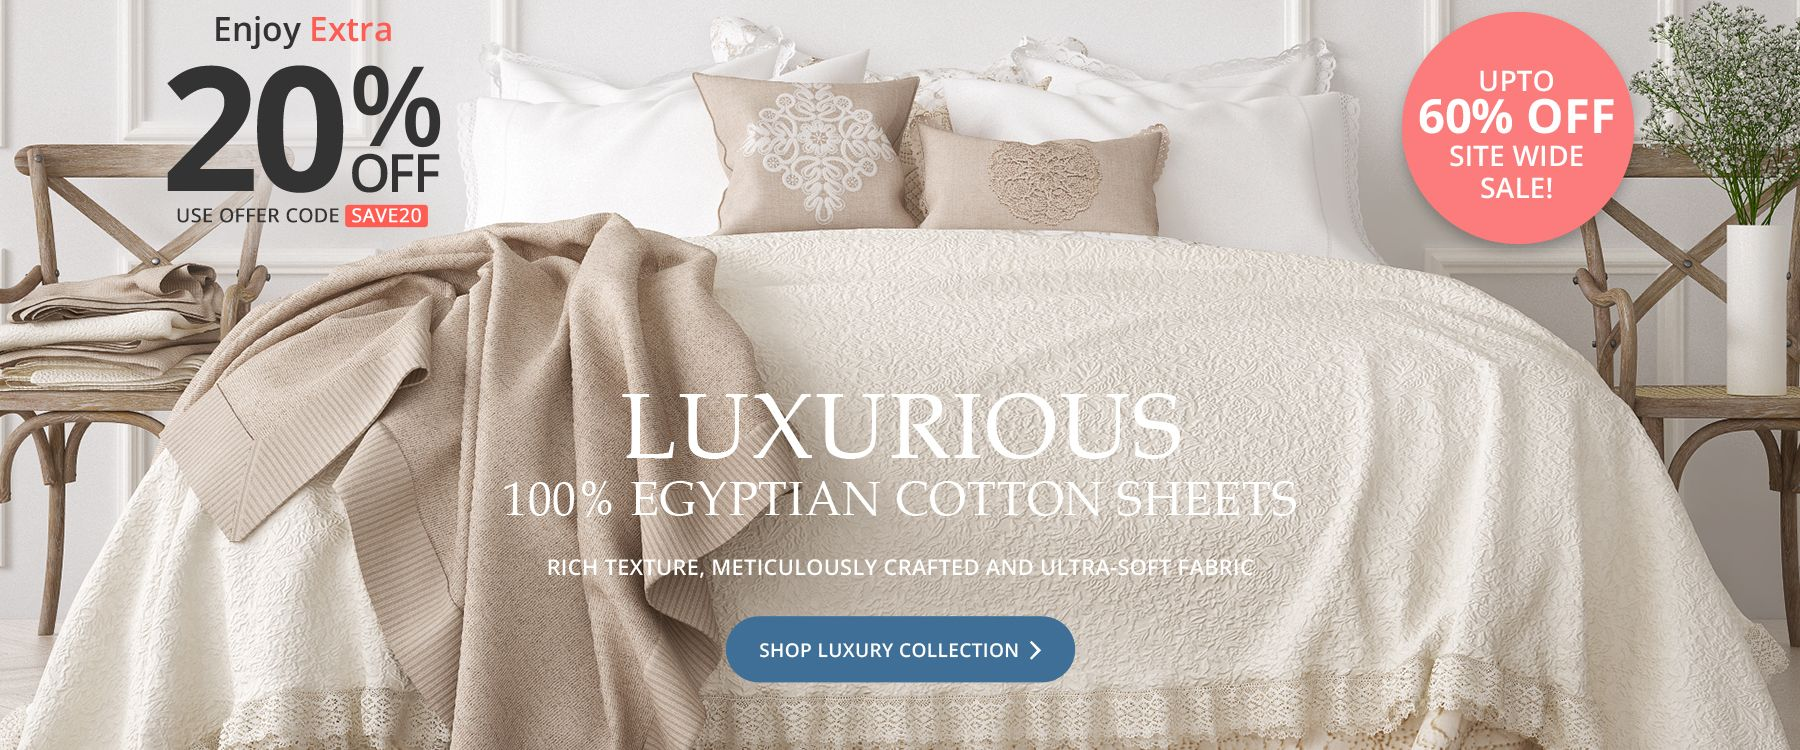 Luxurious - 100% Egyptian Cotton Sheets - Rich Texture, Meticulously Crafted and Ultra-Soft Fabric